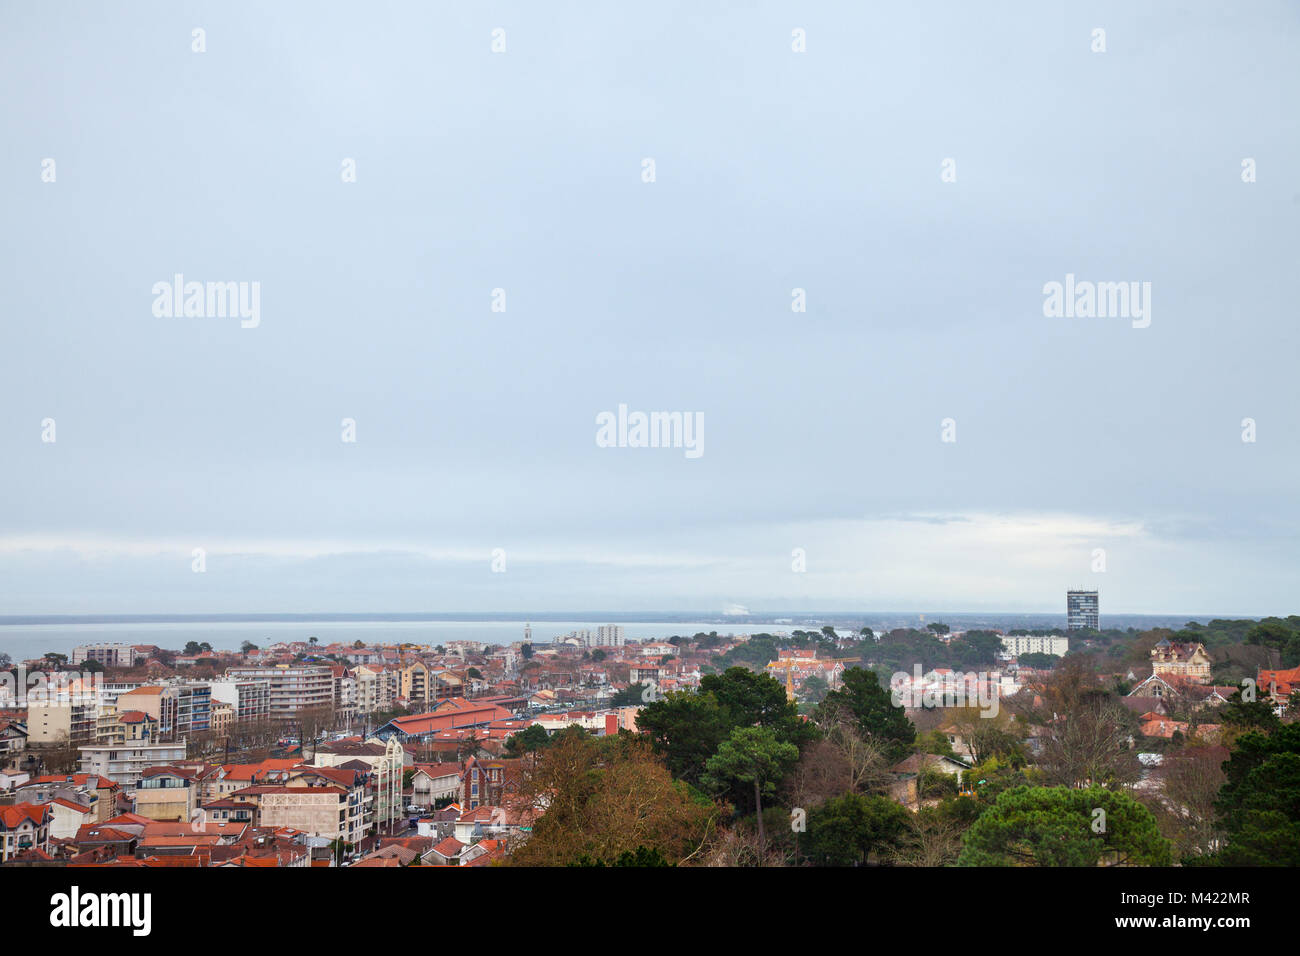 Aerial view of Arcachon, France, during a storm on a cloudy rainy day. Located in Arcachon bay (bassin d'Arcachon), - Stock Image